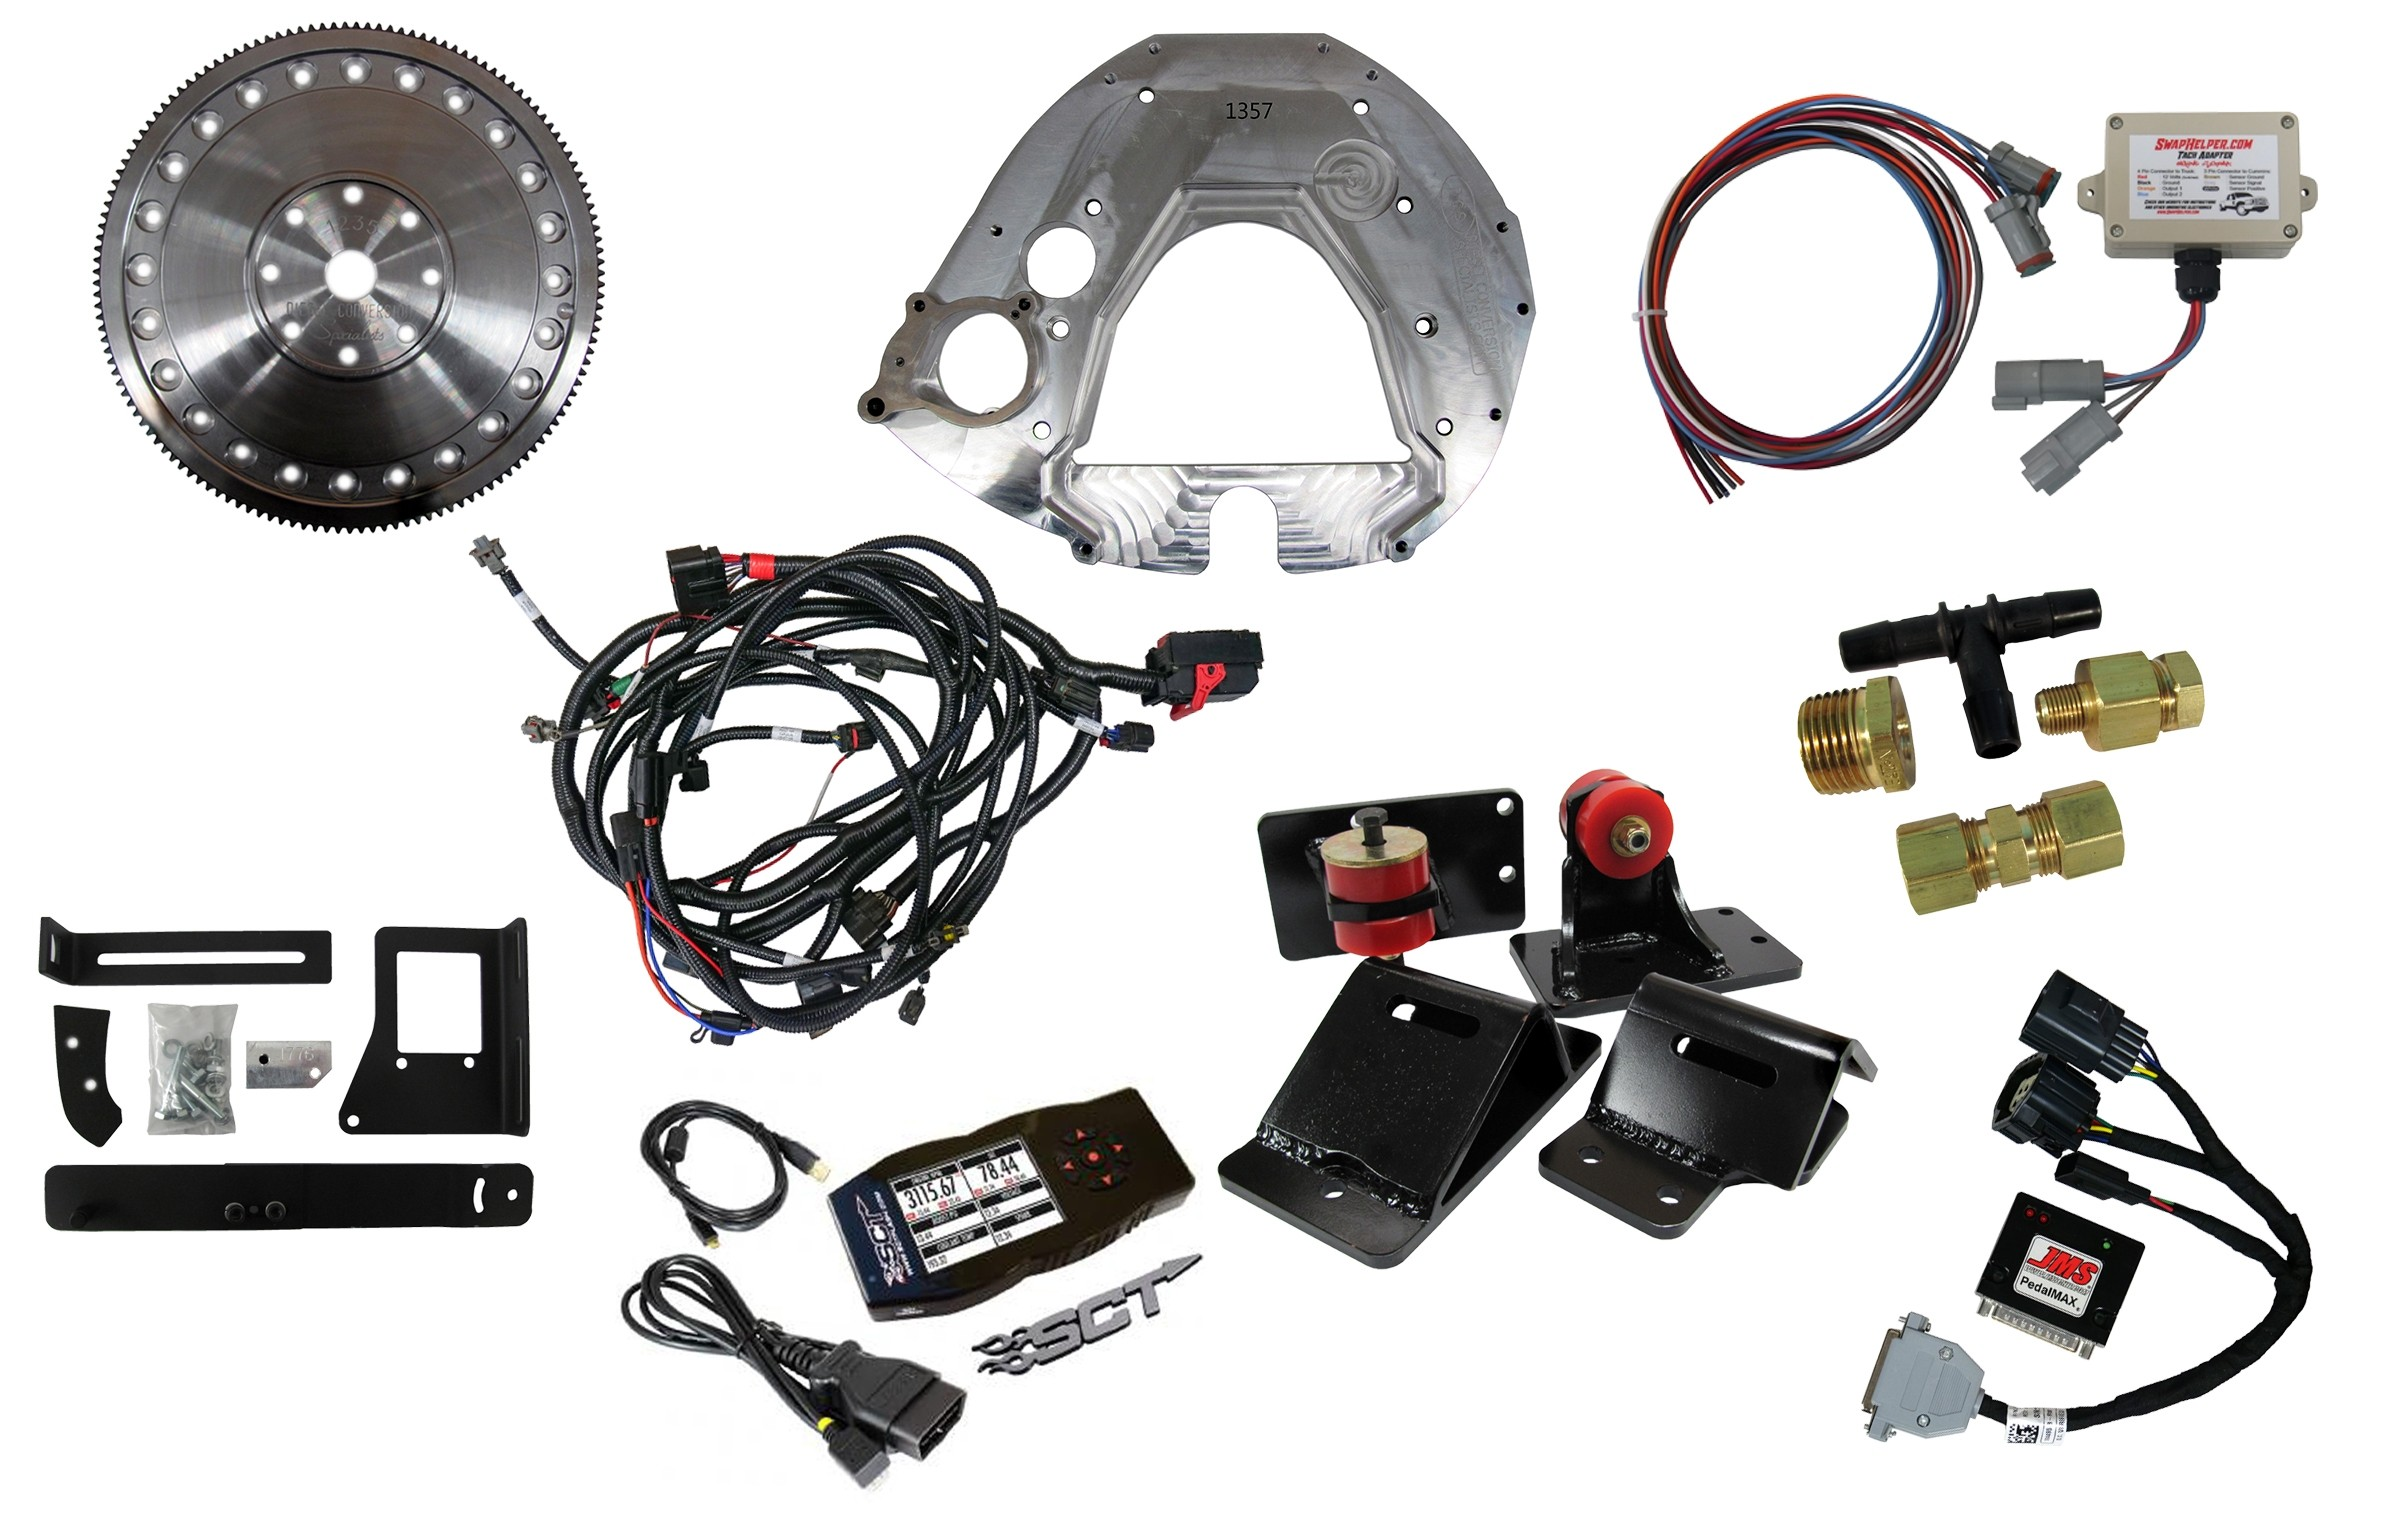 Getting Started Package: Ford 2008-2010, 6 4L, 5R110, 2003